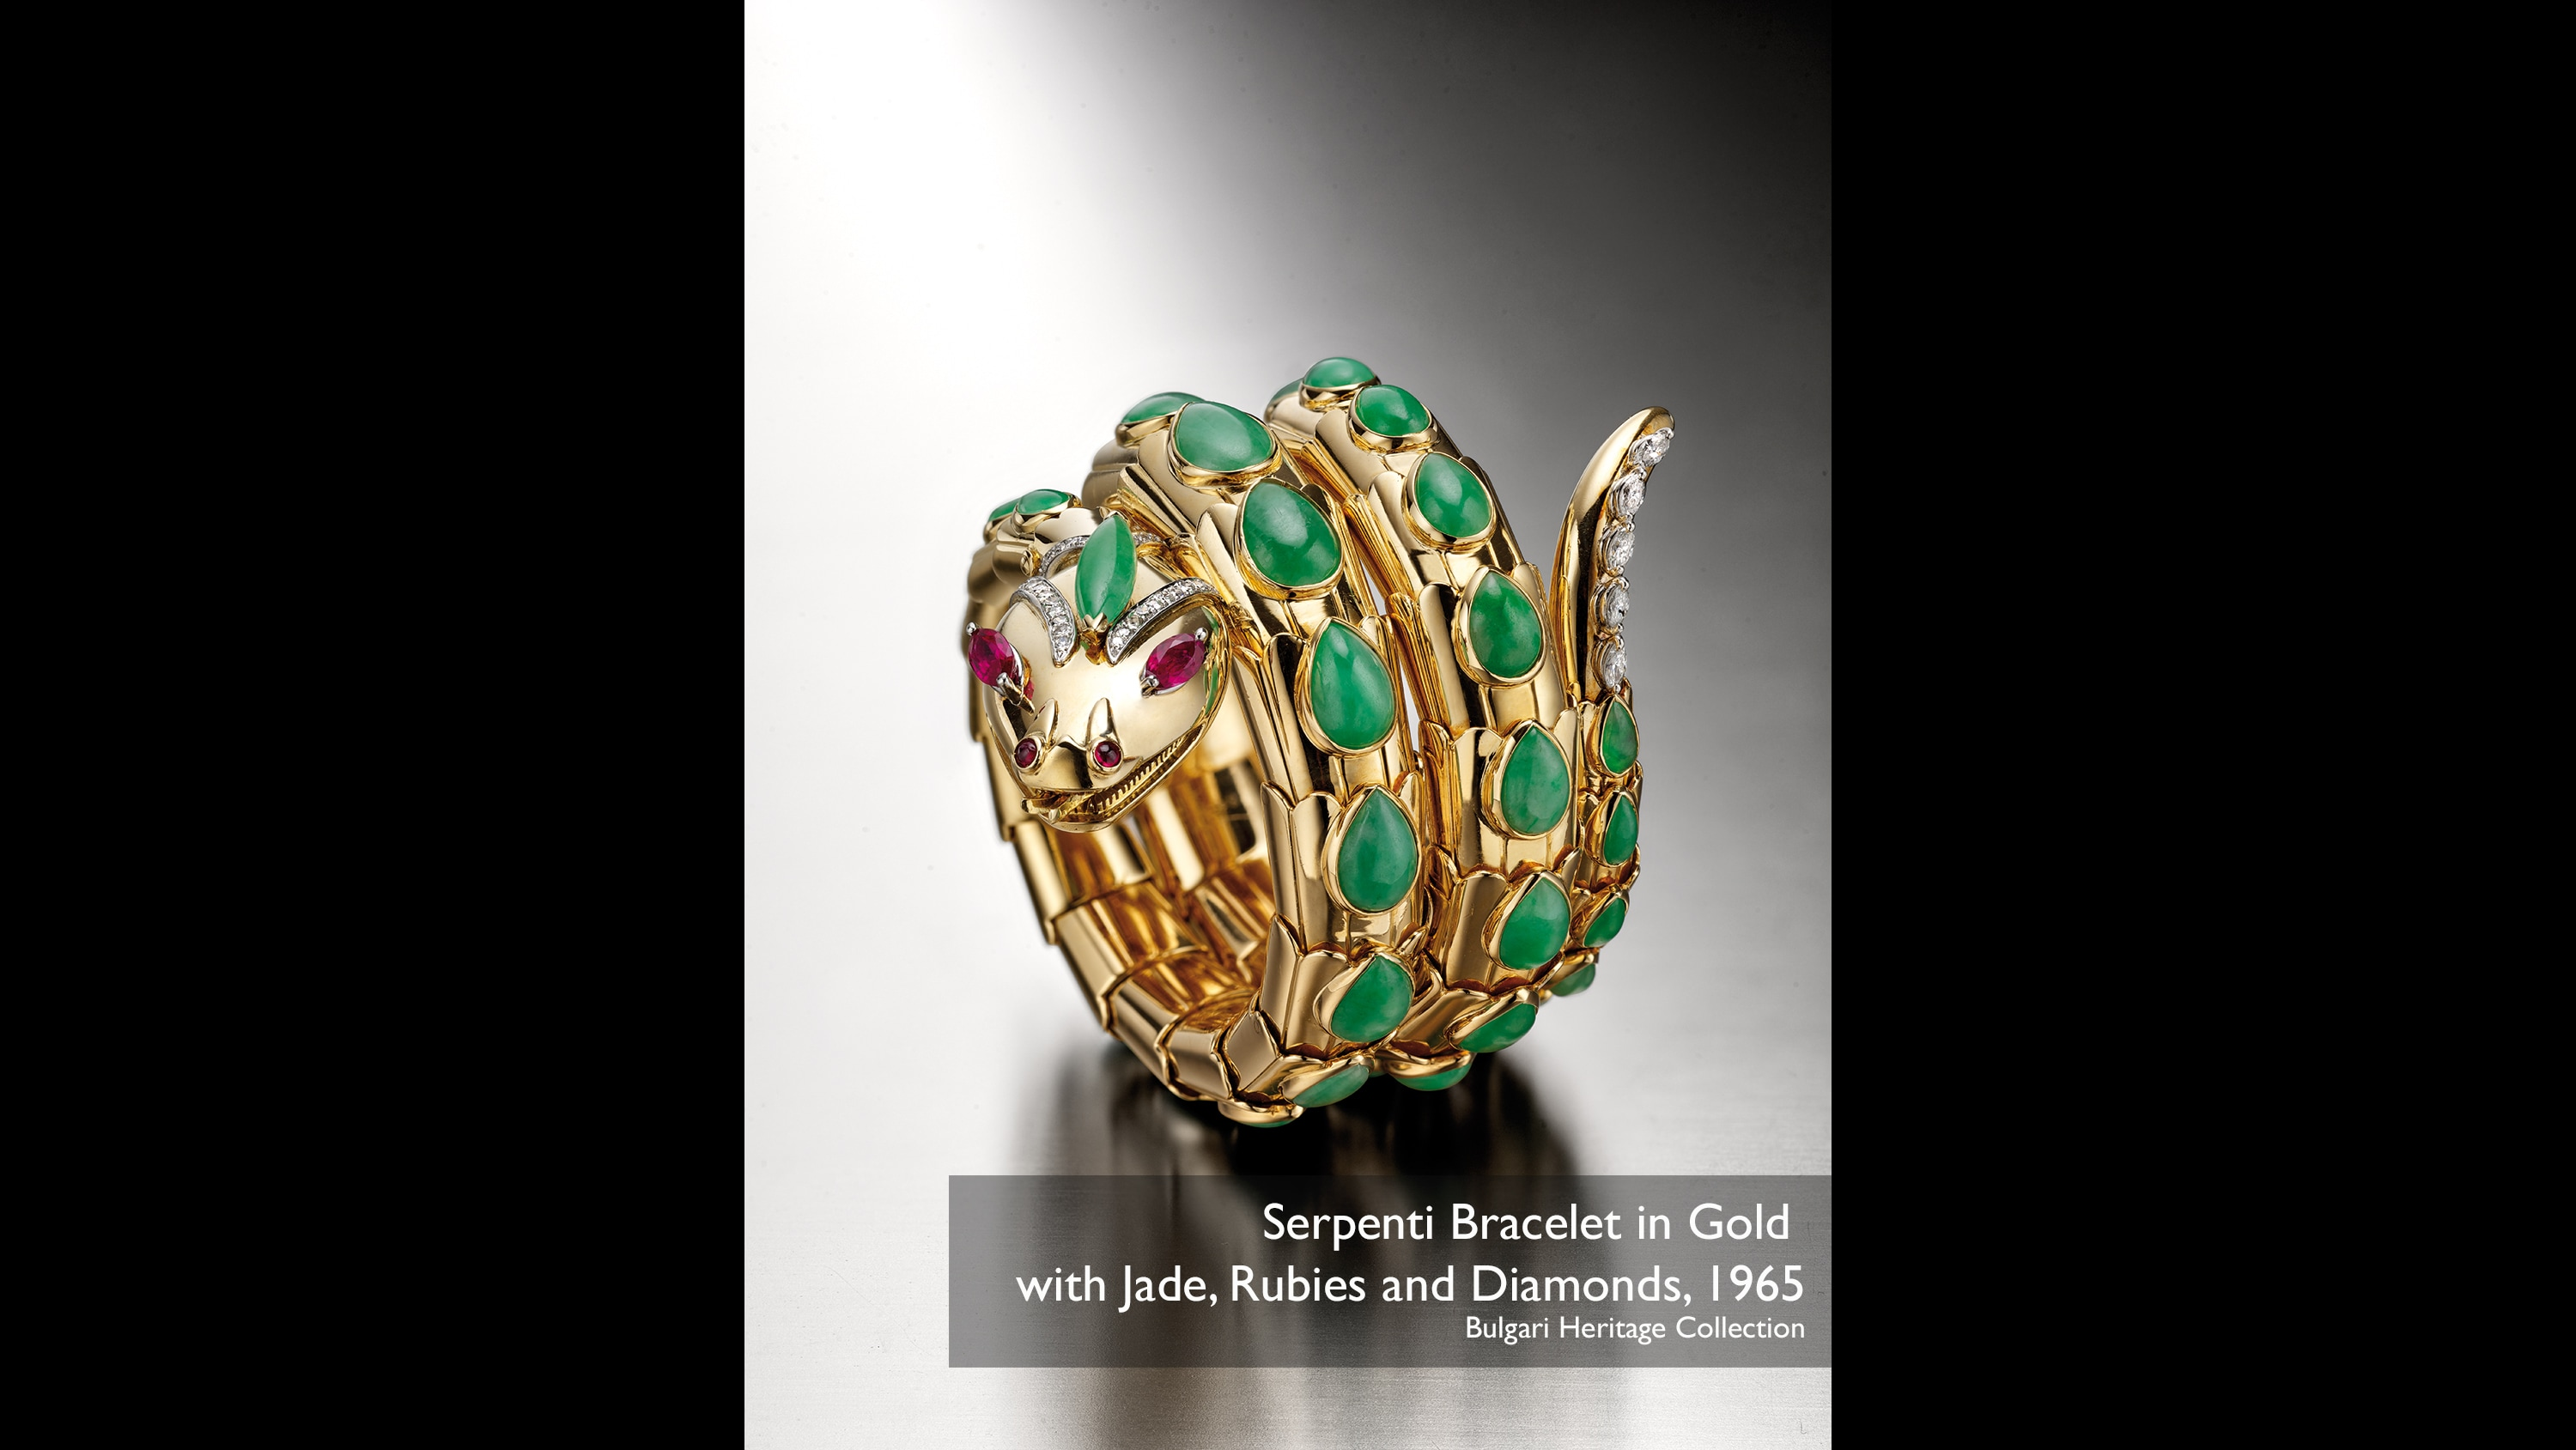 Serpenti bracelet in gold with jade, rubies and diamonds, 1965 Bulgari Heritage Collection